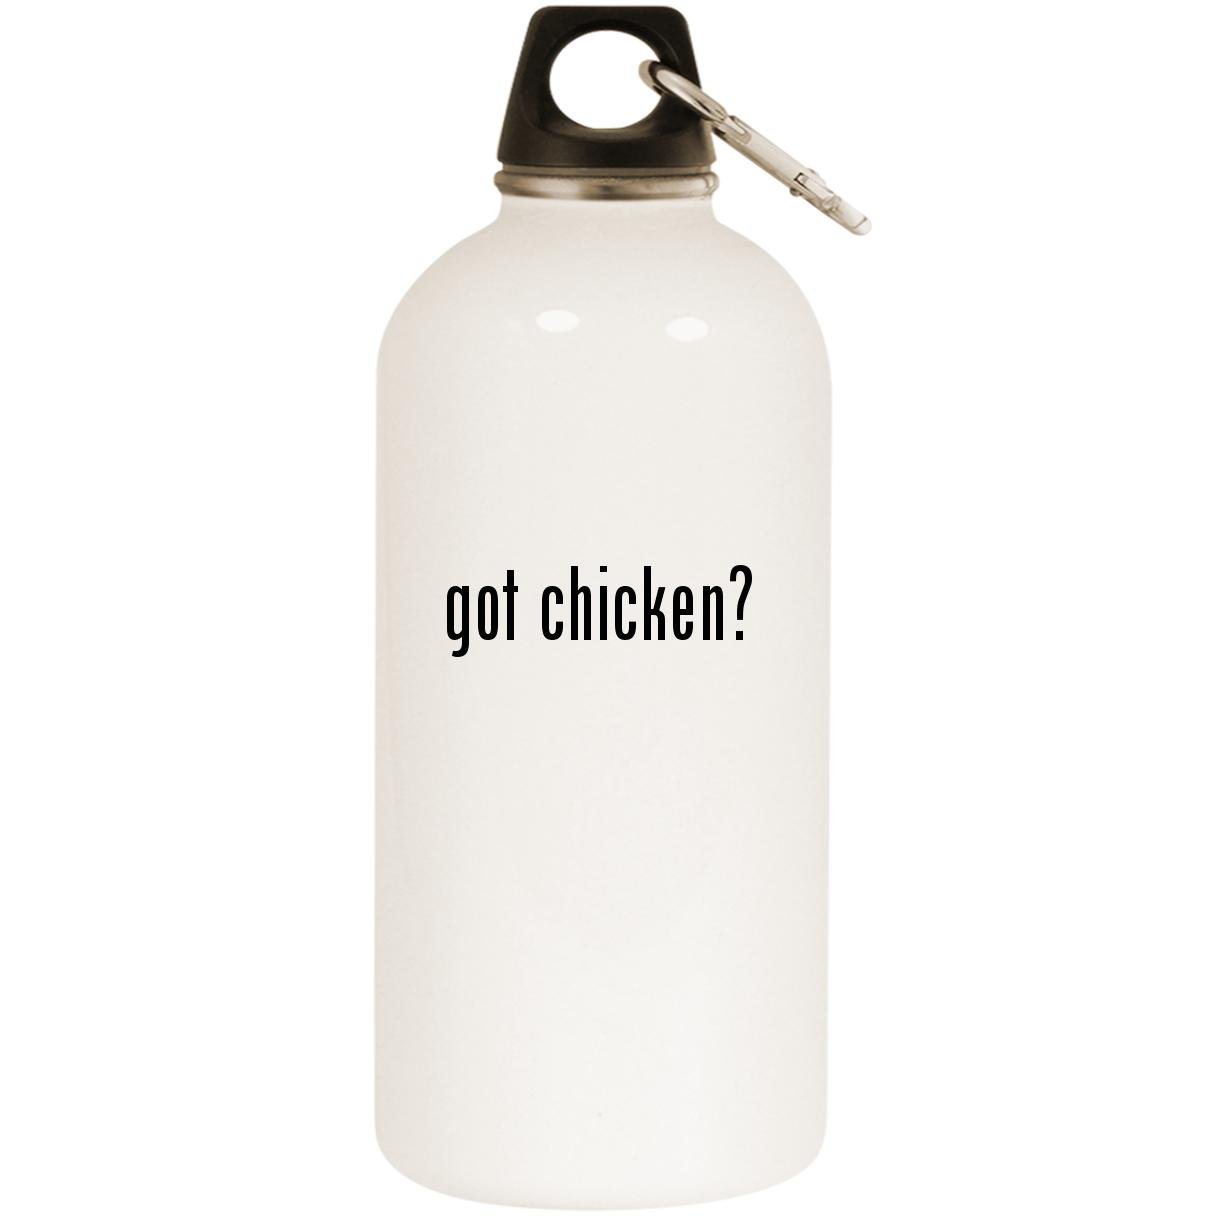 Molandra Products got Chicken? - White 20oz Stainless Steel Water Bottle with Carabiner